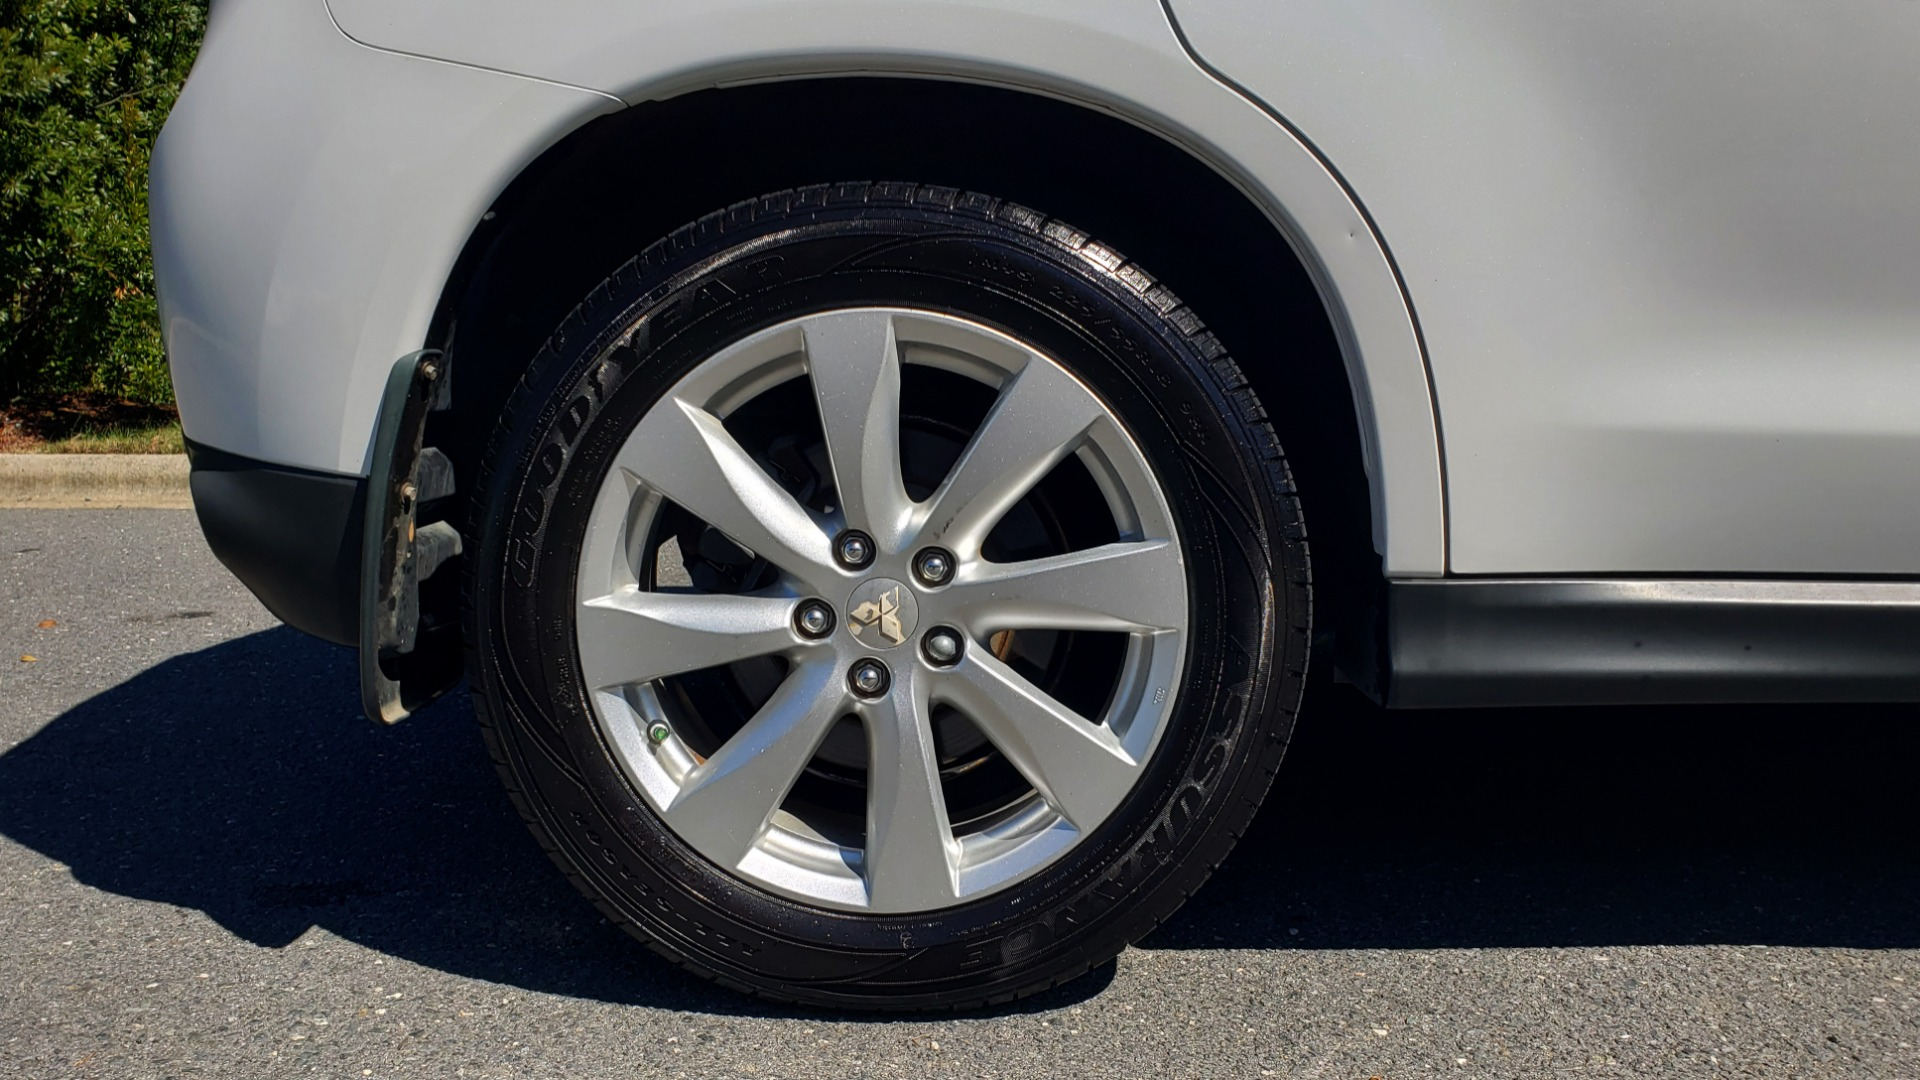 Used 2013 Mitsubishi OUTLANDER SPORT SE / 2WD / 4-DR SUV / CVT TRANS / PREMIUM SOUND / REARVIEW for sale $8,695 at Formula Imports in Charlotte NC 28227 74